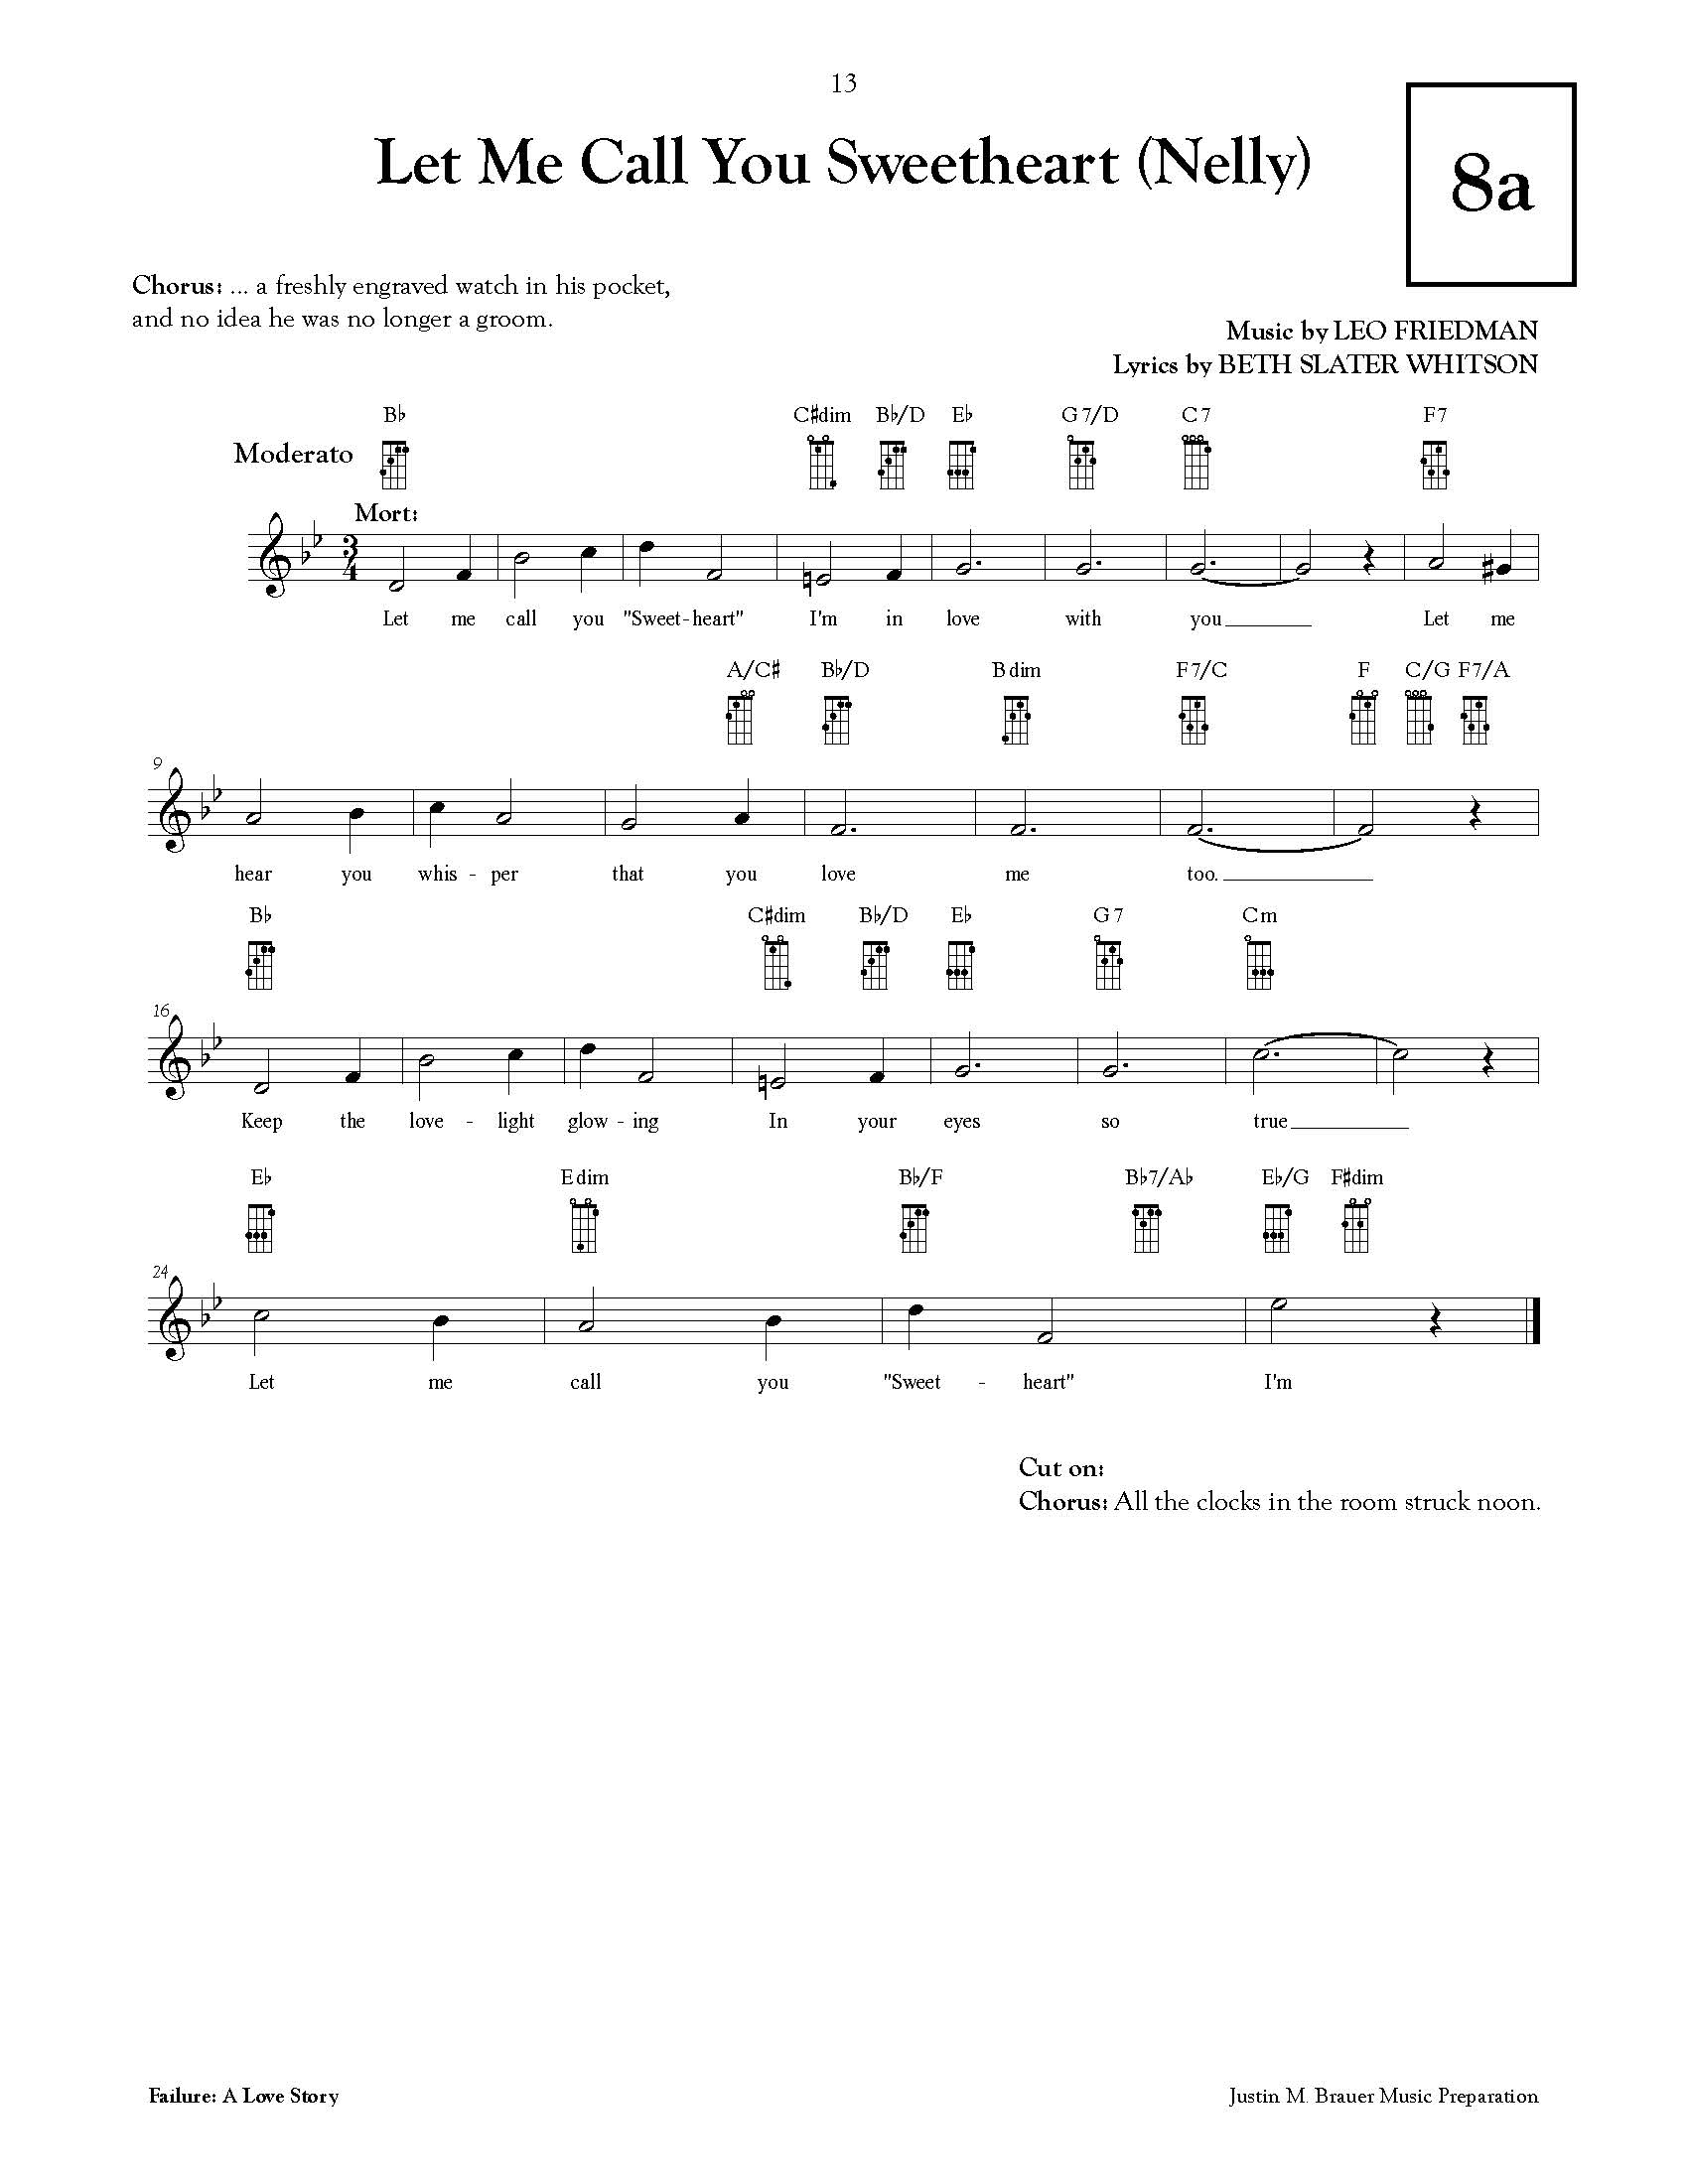 Failure A Love Story Vocal Score_Page_15.jpg